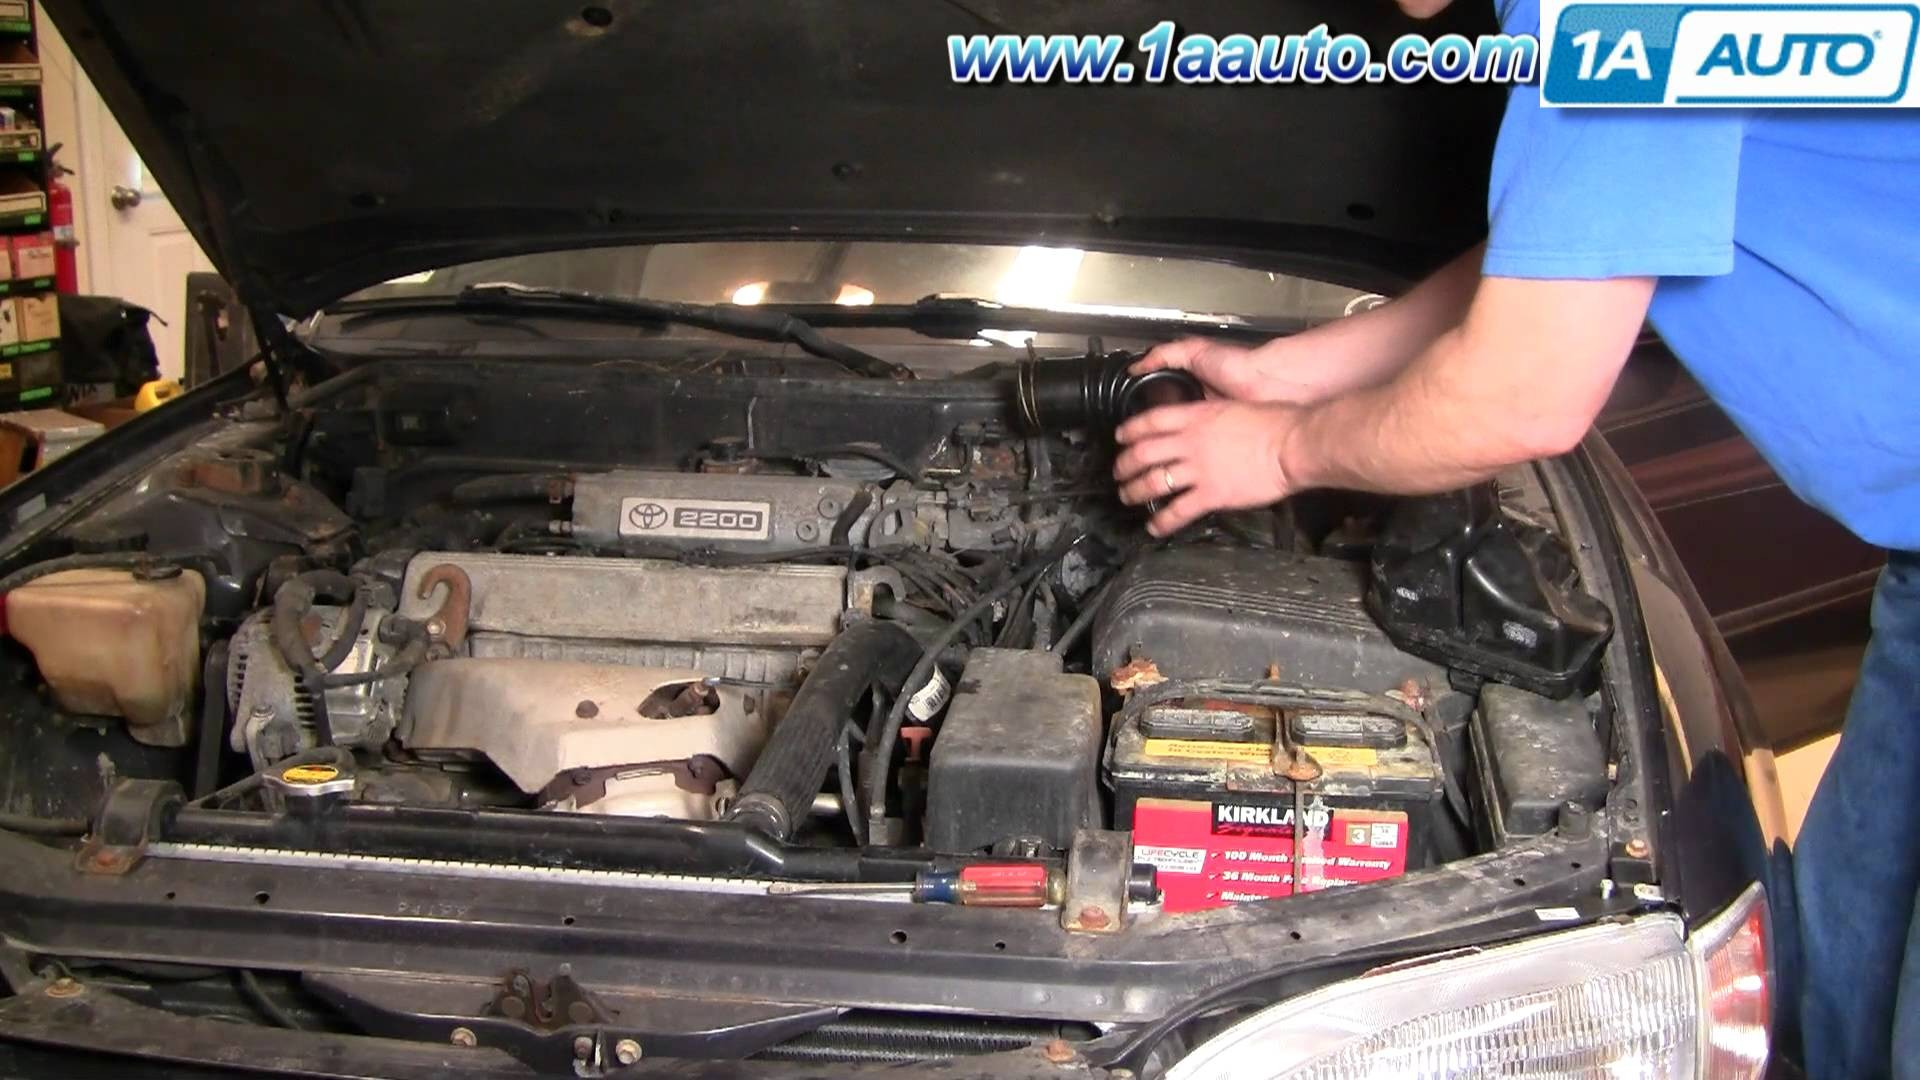 1999 Sienna Engine Diagram Toyota Wiring Library How To Install Replace Air Intake Hose Camry 2 2l 95 96 1aauto